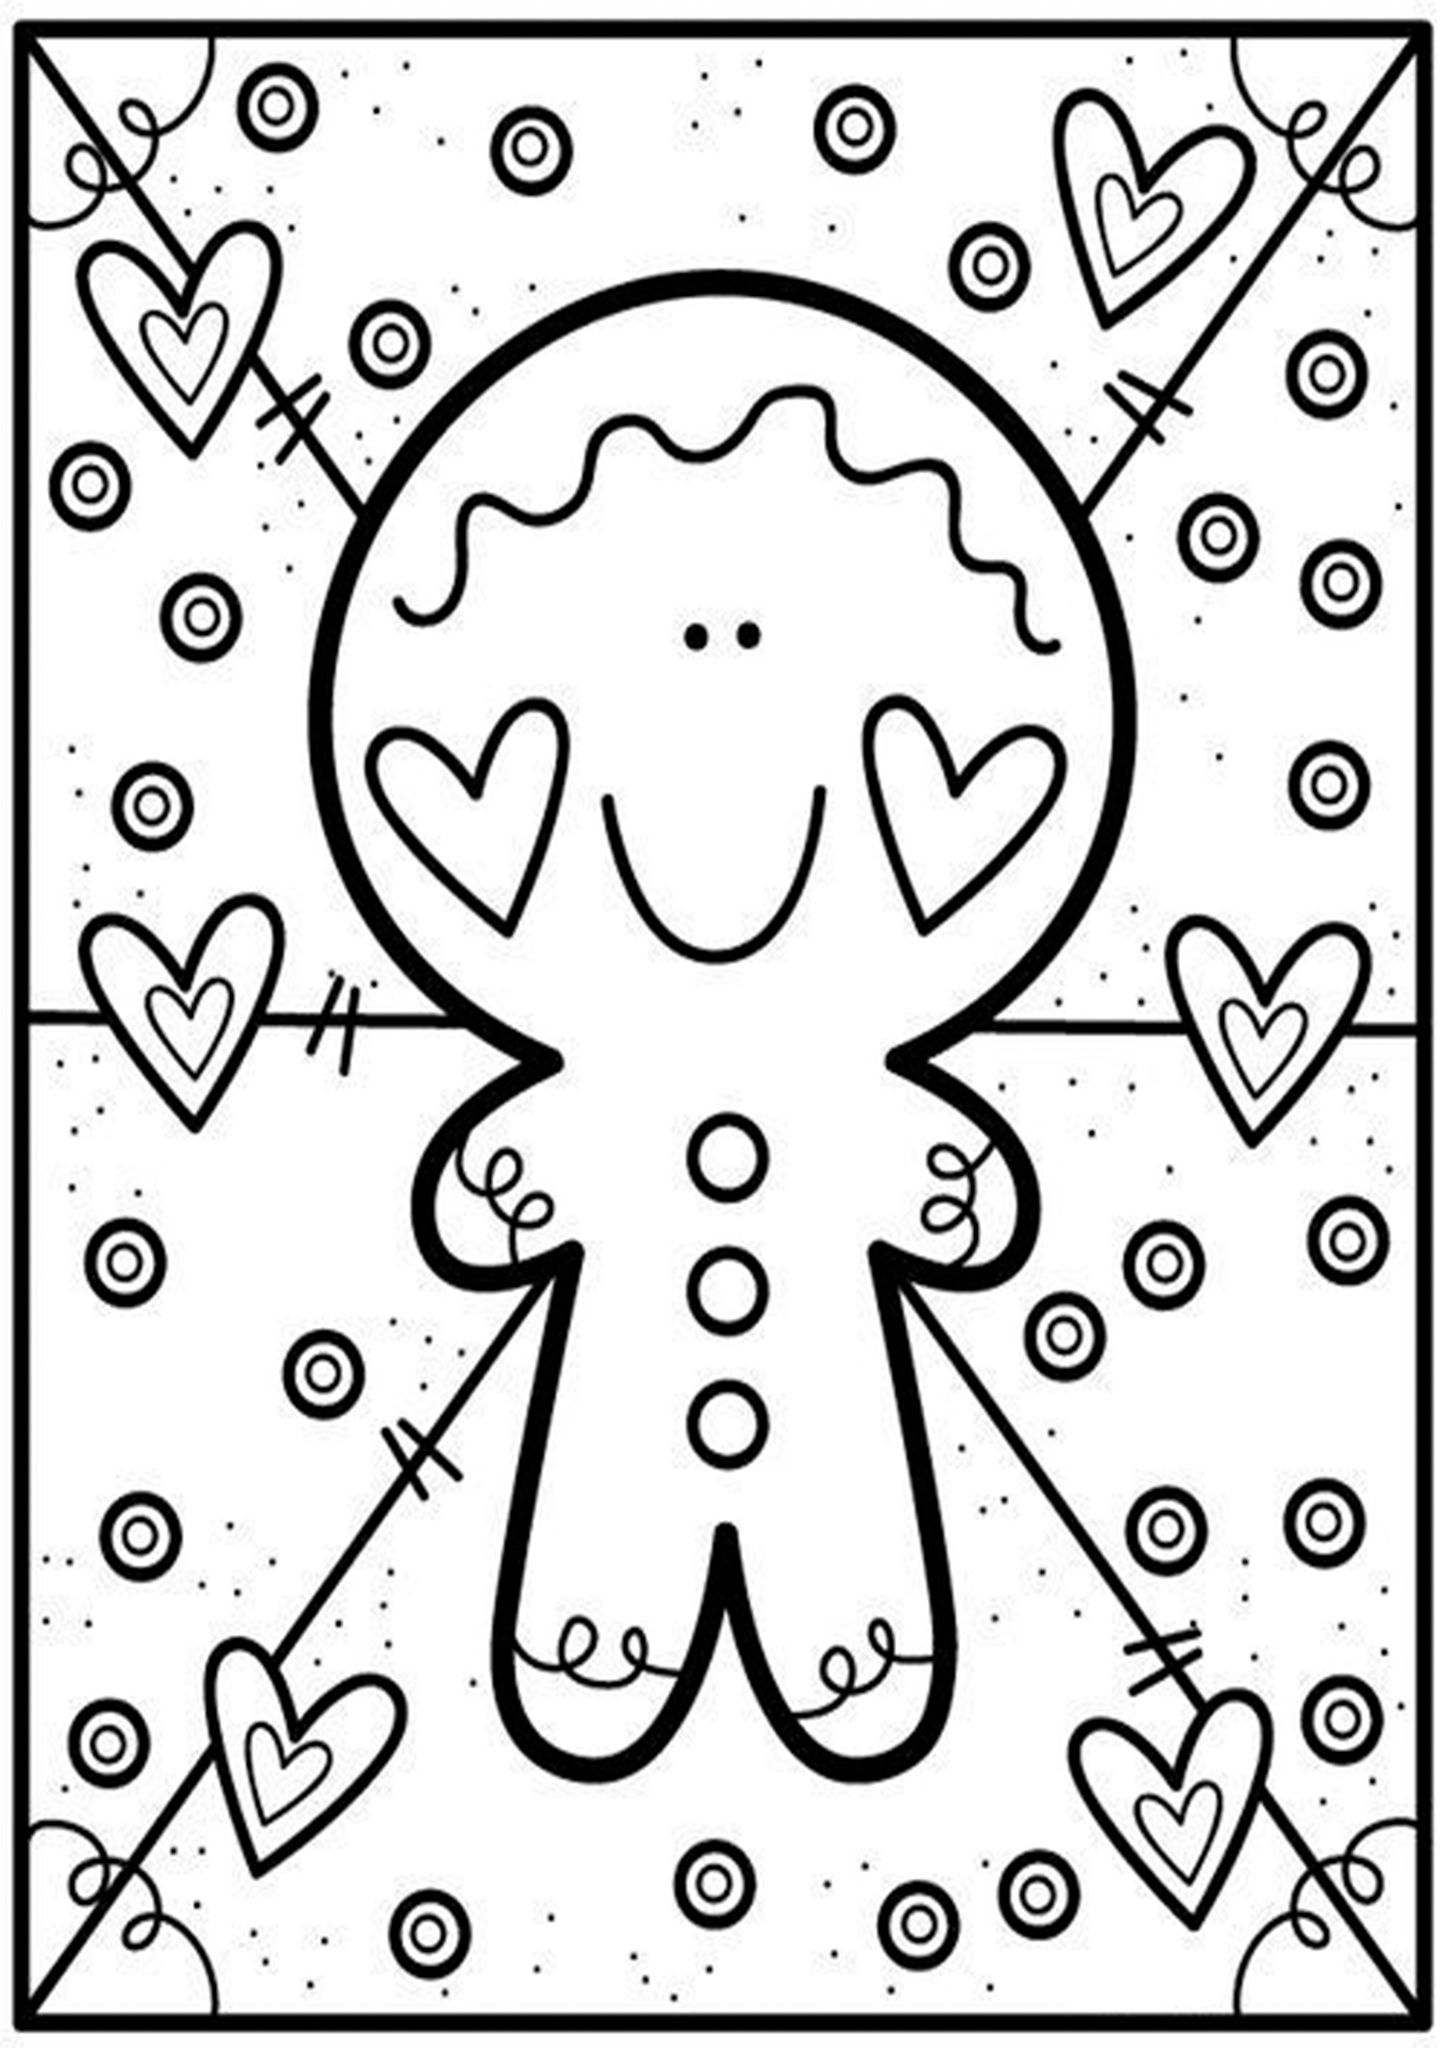 Free Easy To Print Cute Coloring Pages Christmas Coloring Pages Cute Coloring Pages Christmas Coloring Sheets [ 2048 x 1448 Pixel ]